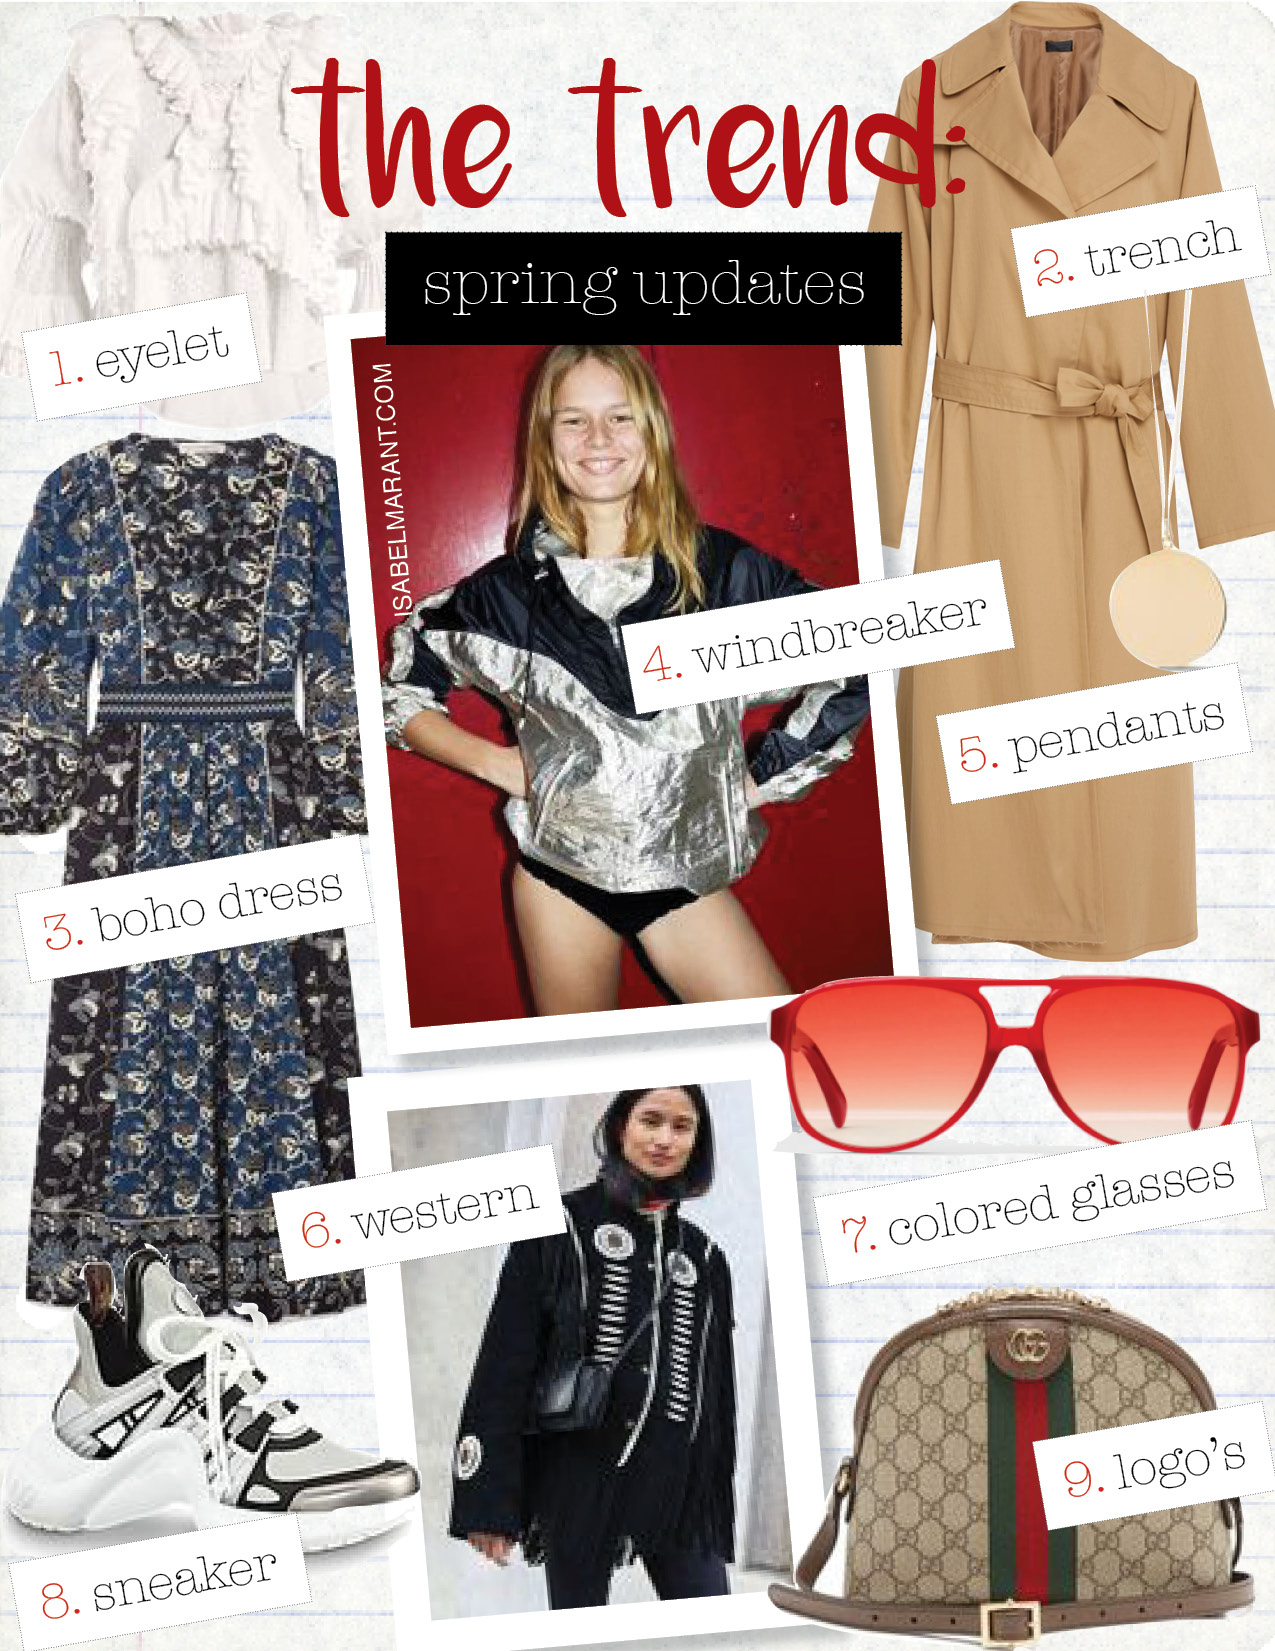 1. isabel marant zim ruffle-trimmed blouse, $713,  matchesfashion.com  2. nili lotan topher techno twill coat, $995,  modaoperandi.com  3. ulla johnson lona embroidered printed dress, $470,  net-a-porter.com  4. isabel marant etoile cyriel color-block shell hooded top, $470,  net-a-porter.com  5. h&m pendant necklace, $7,  hm.com  6. zara distressed fabric jacket with fringe, $29,  zara.com  7. celine navigator sunglasses, $430,  celine.com  8. Louis Vuitton lv archlight sneaker, $1090, us. louisvuitton.com  9. gucci ophidia leather-trimmed printed coated canvas shoulder bag, $1390,  net-a-porter.com